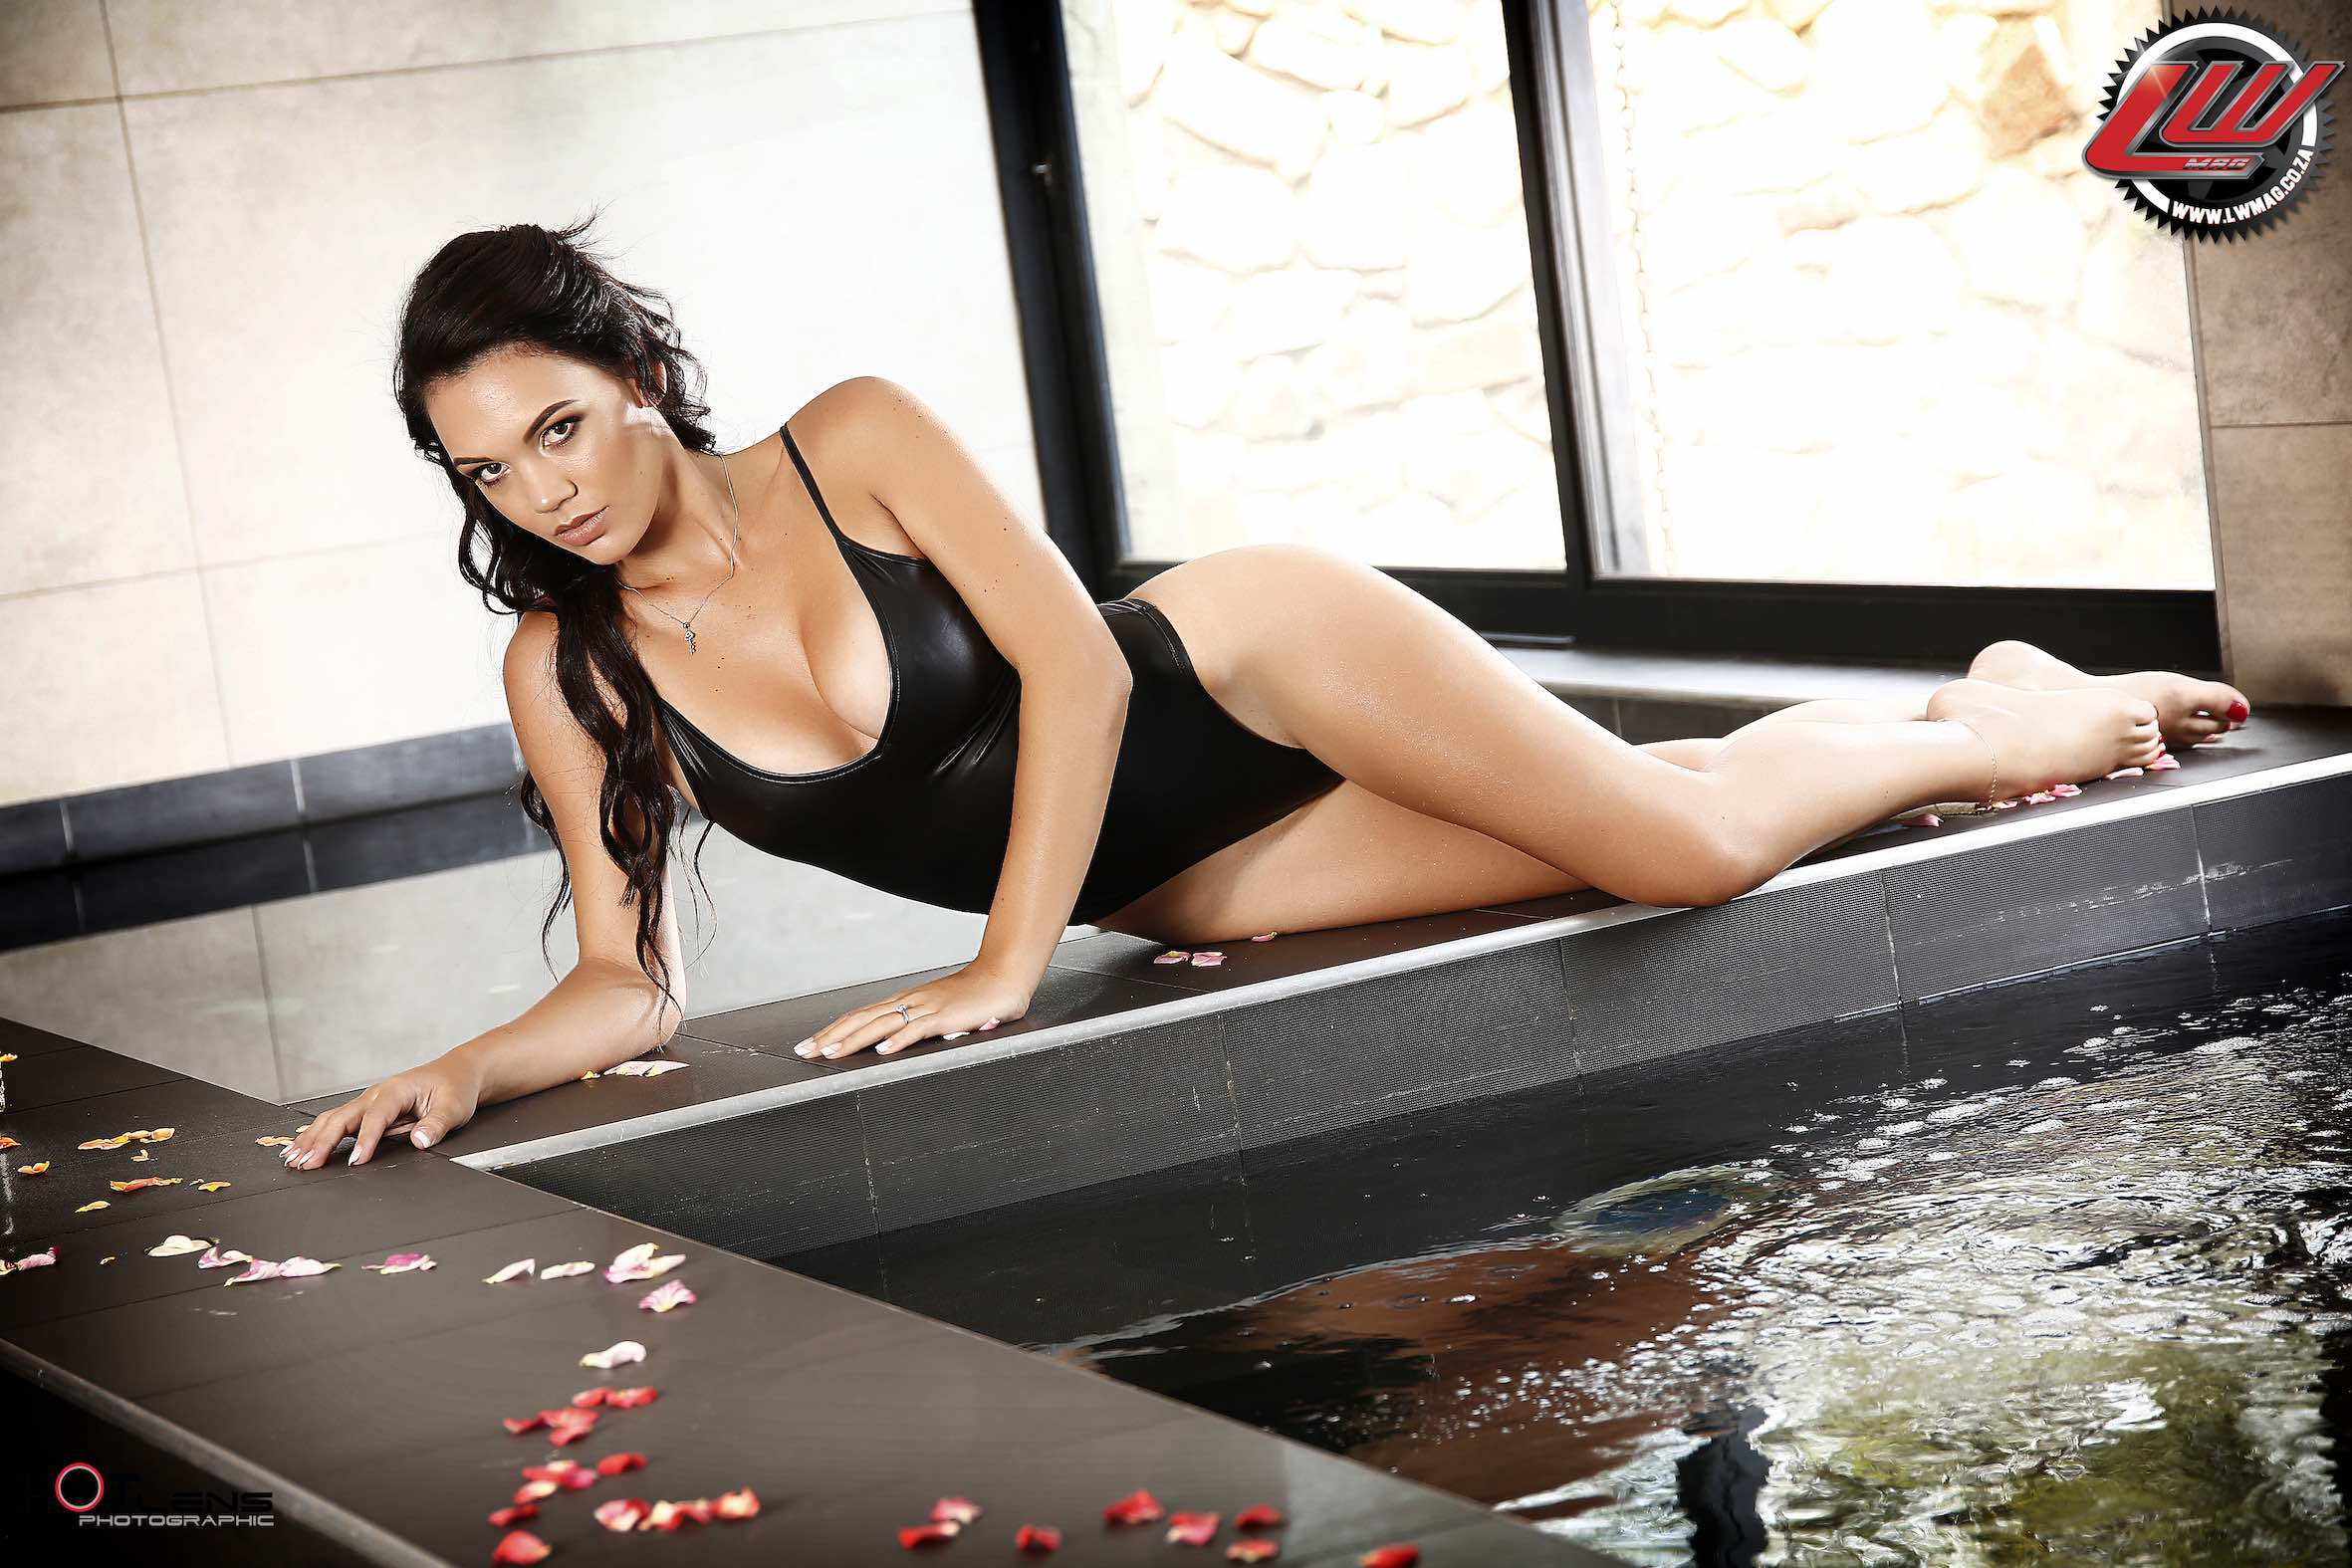 Our South African babes feature with Corita van den Berg